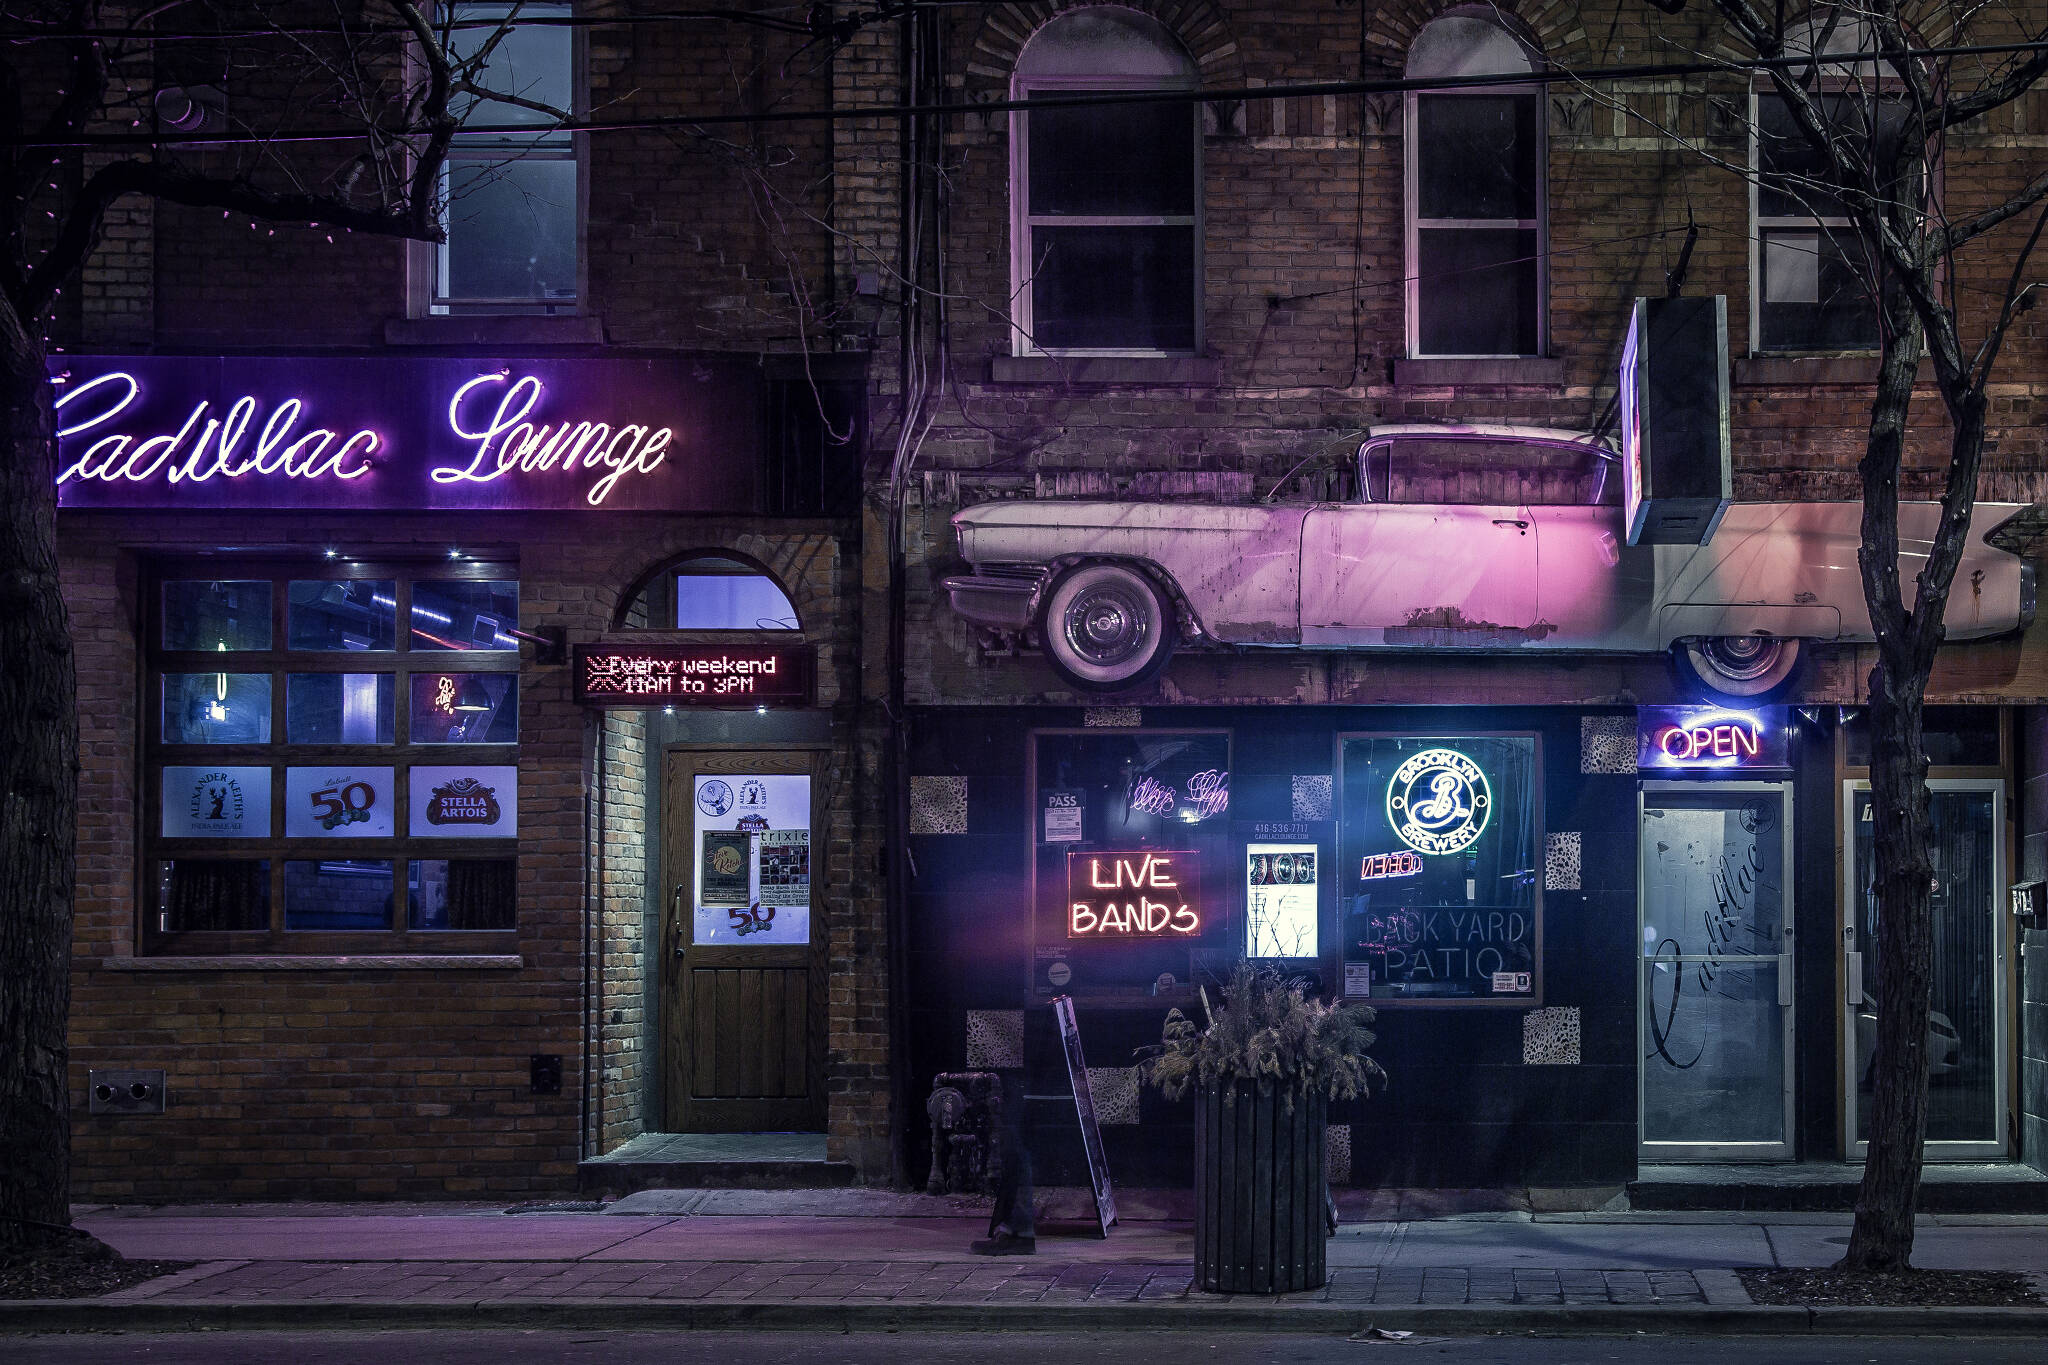 The End Could Be Near For The Cadillac Lounge